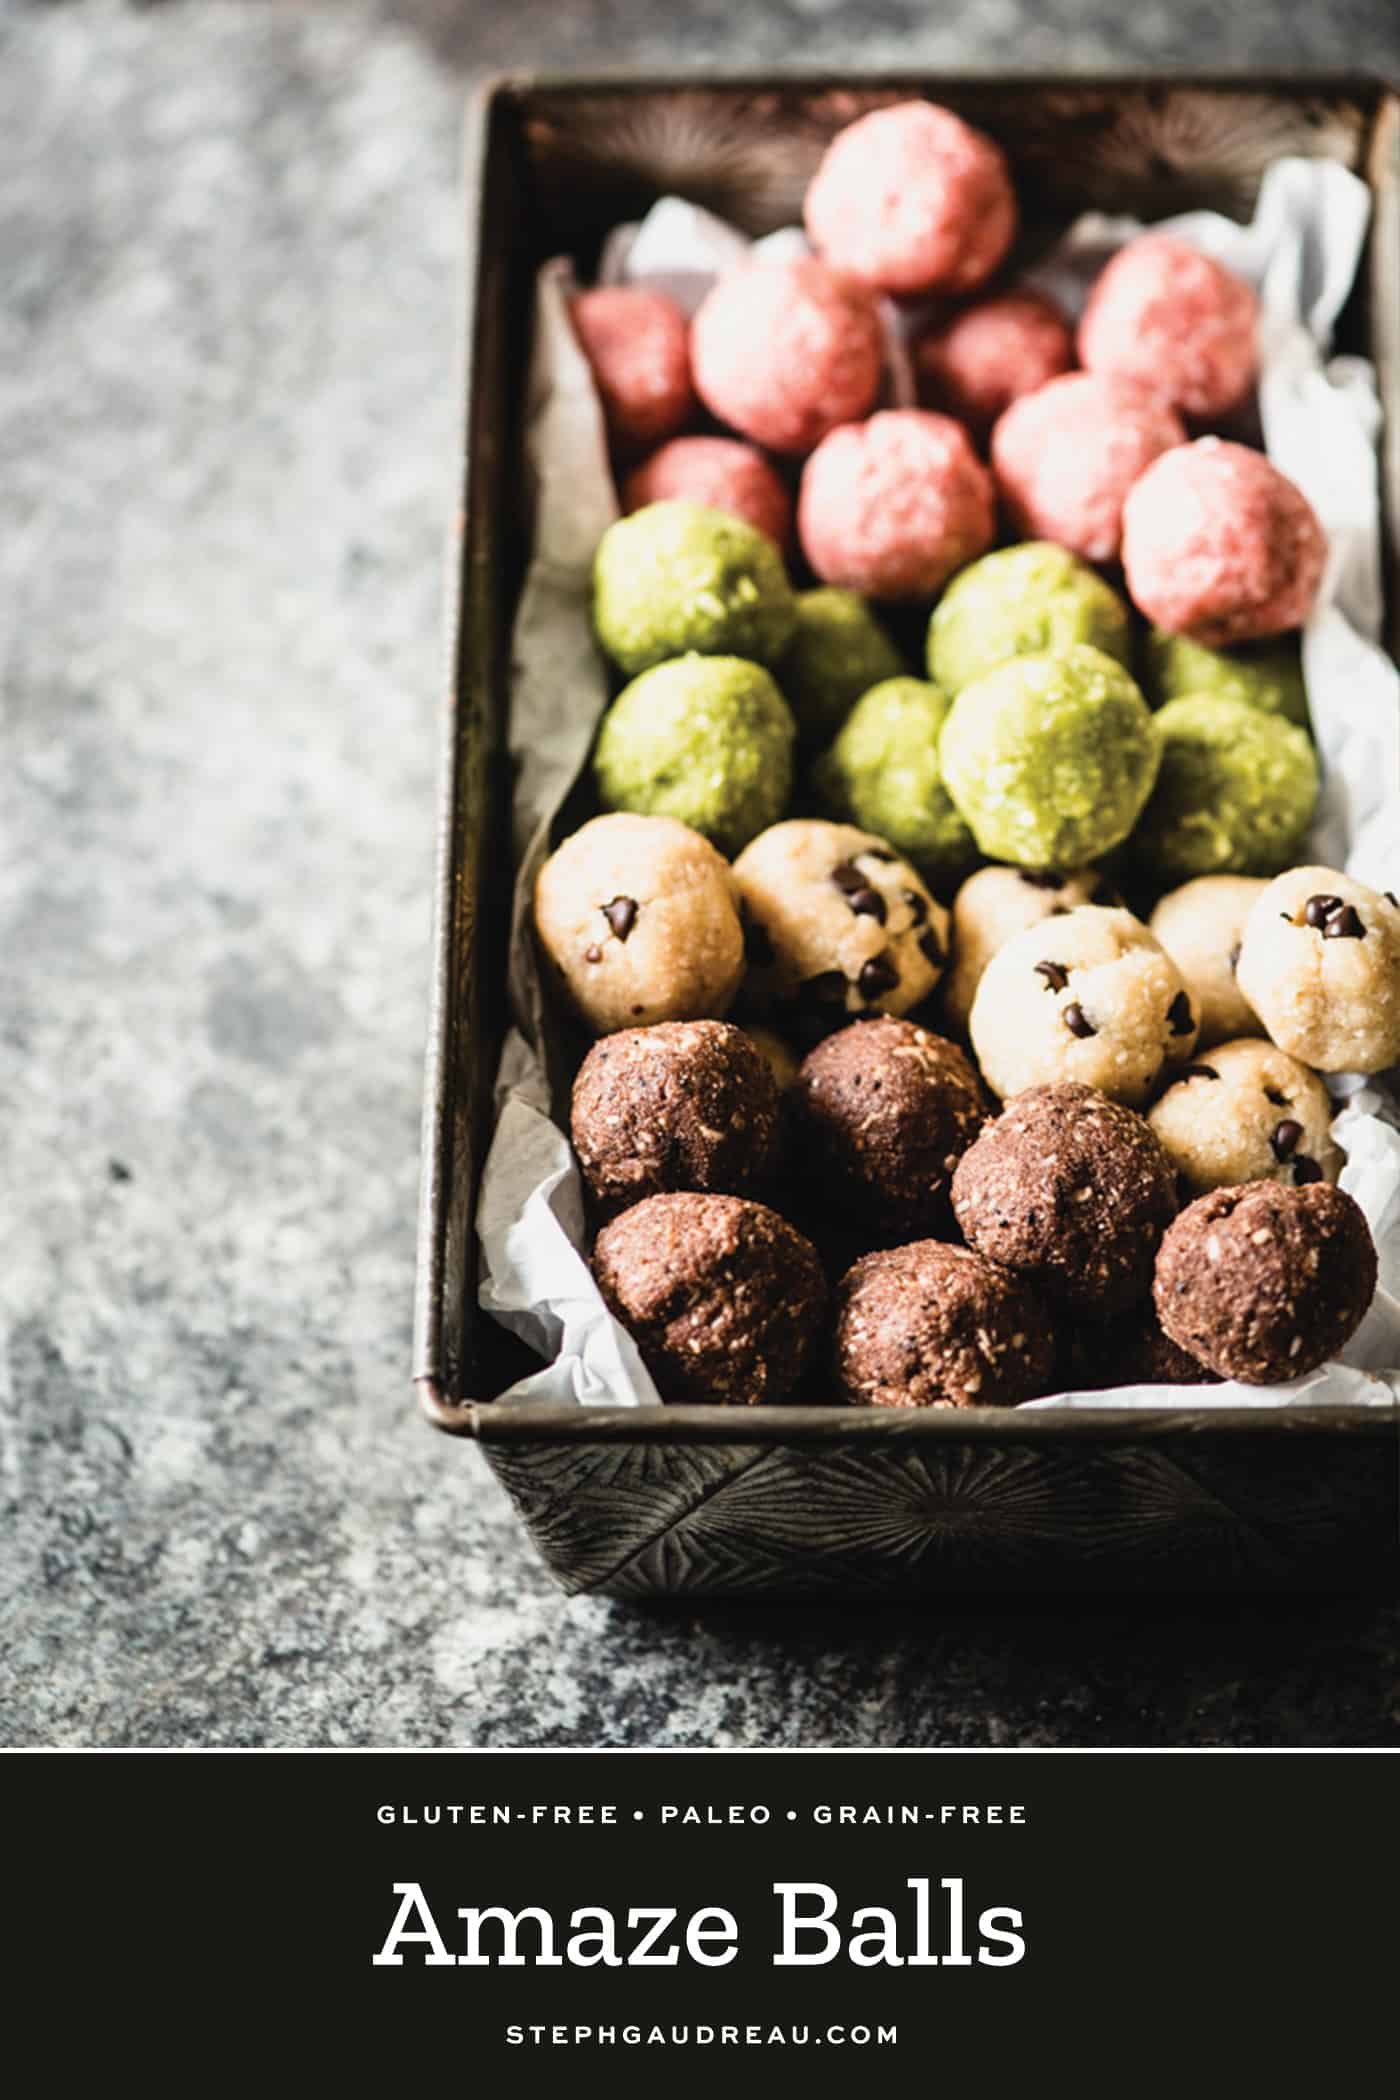 gluten-free amaze balls in pink, green, chocolate chip and chocolate